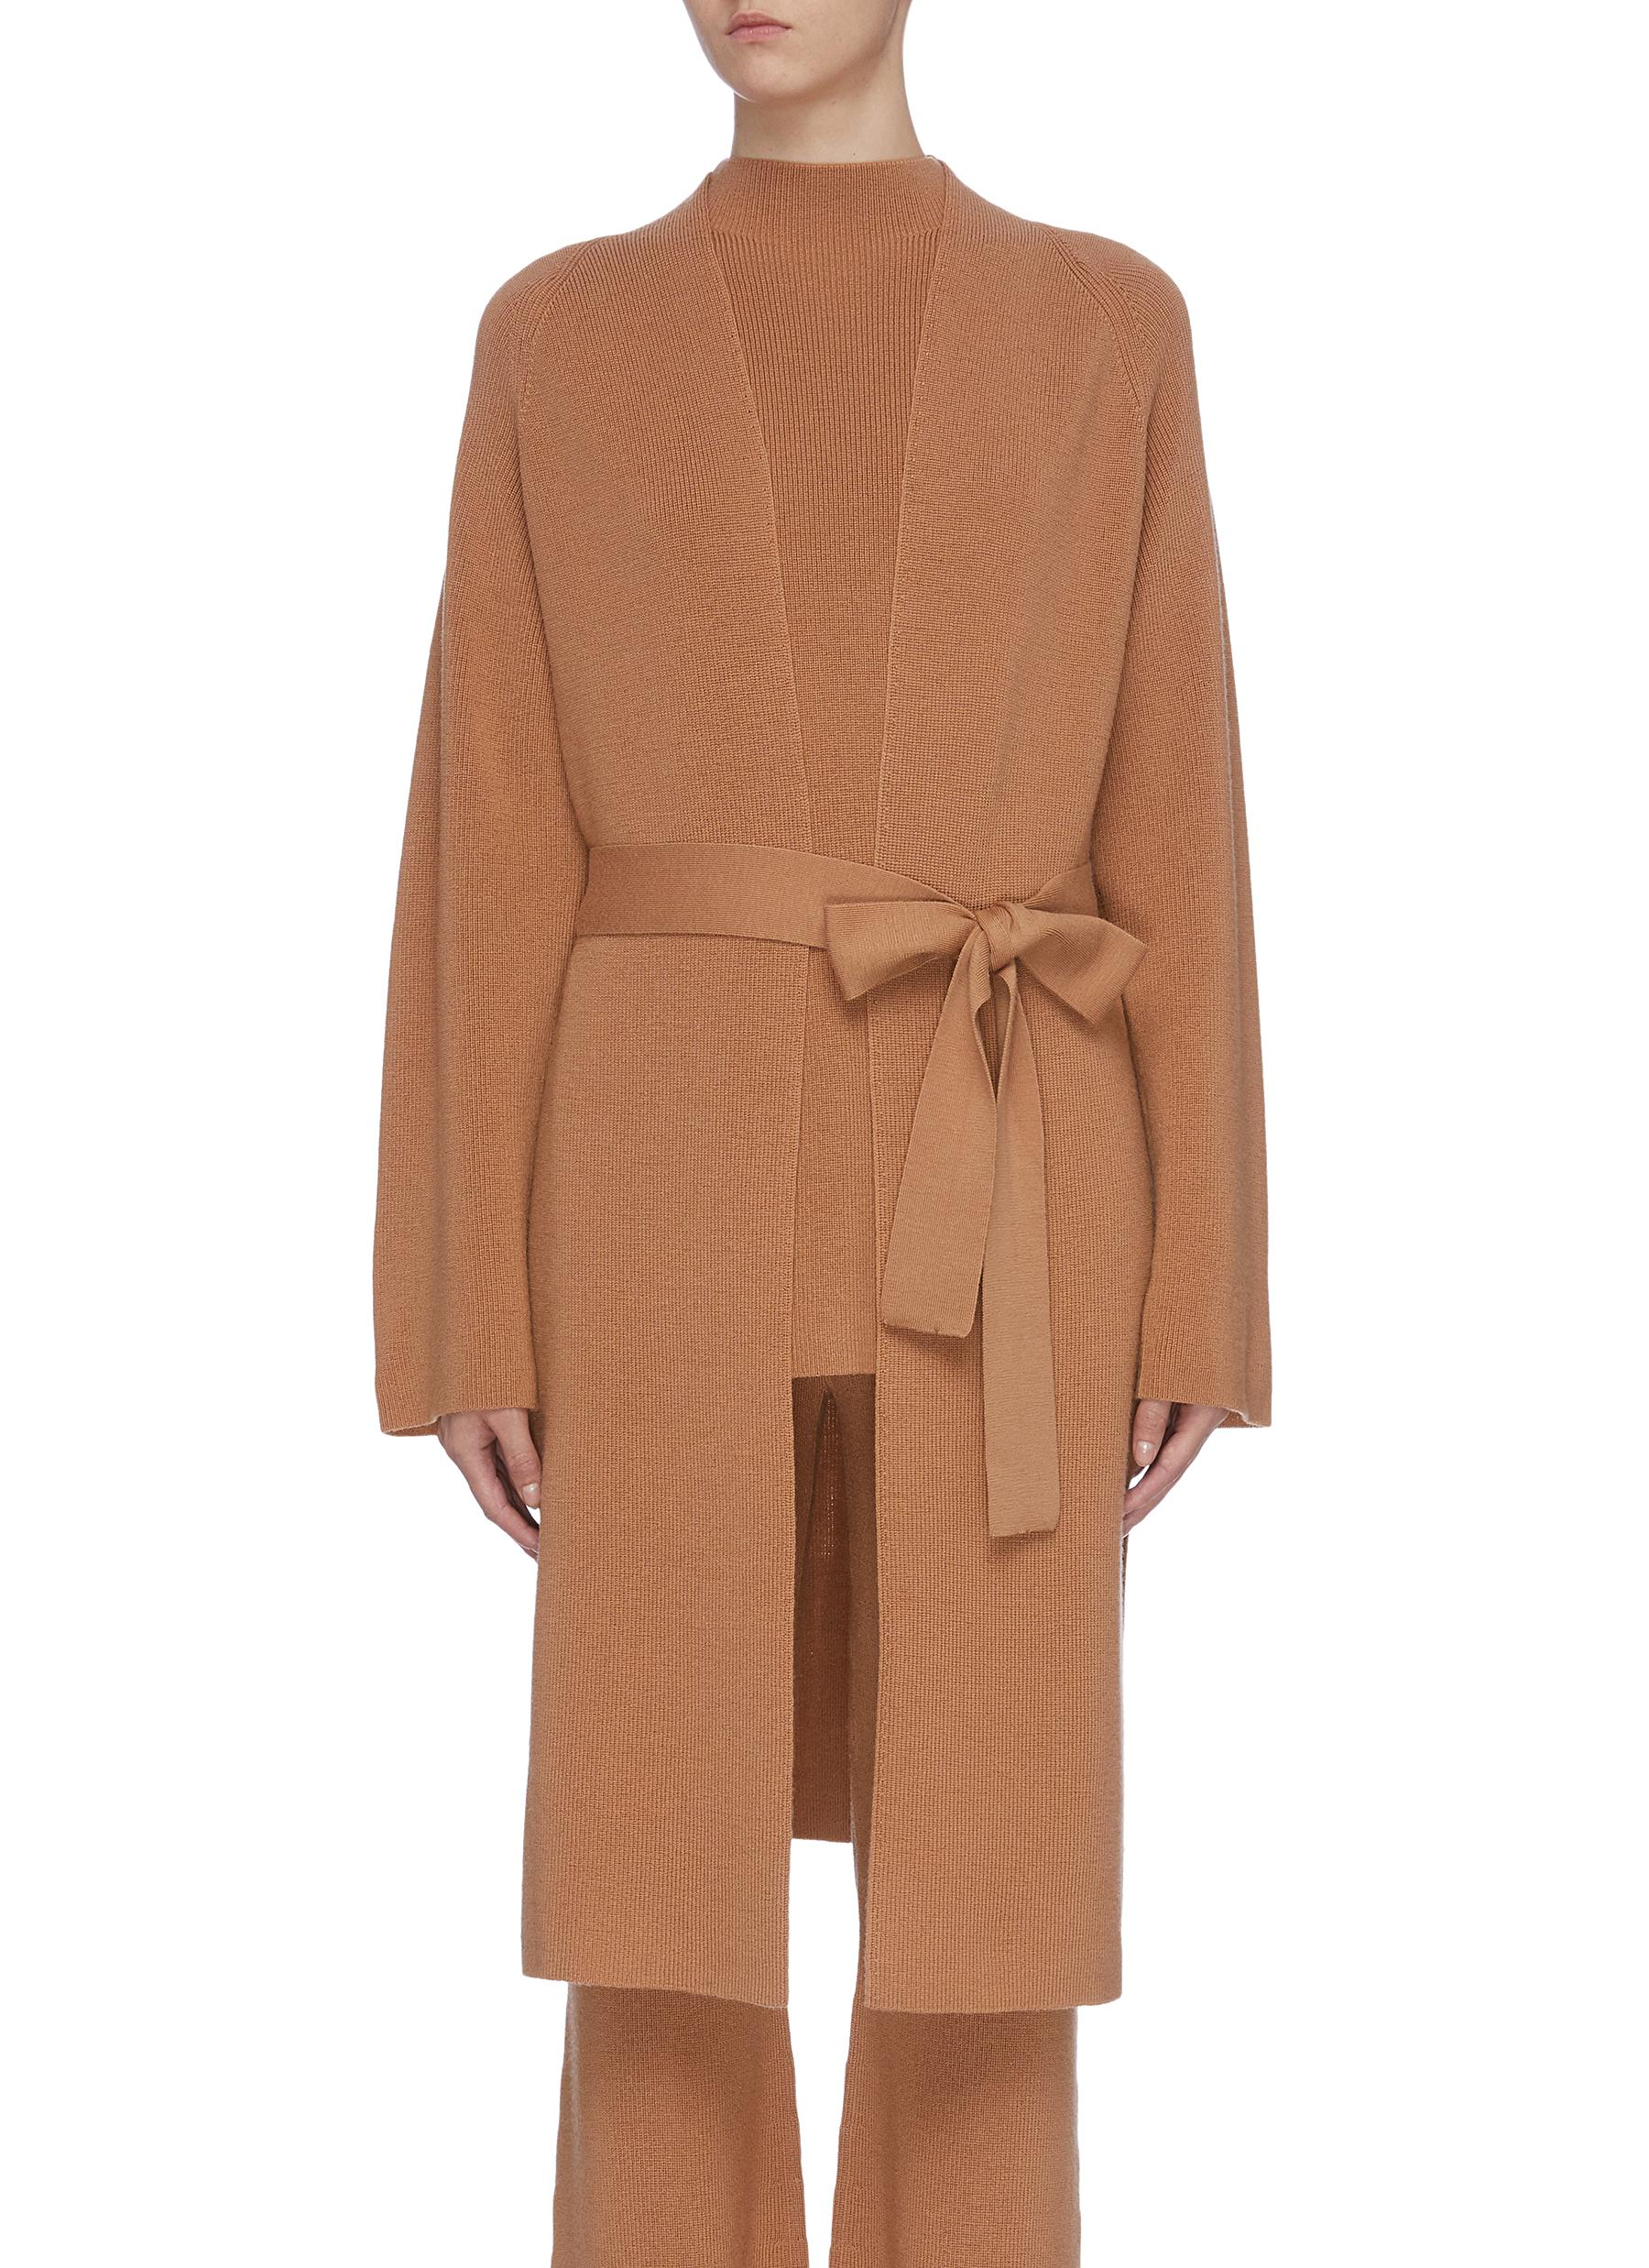 Sash belted wool open cardigan by Crush Collection